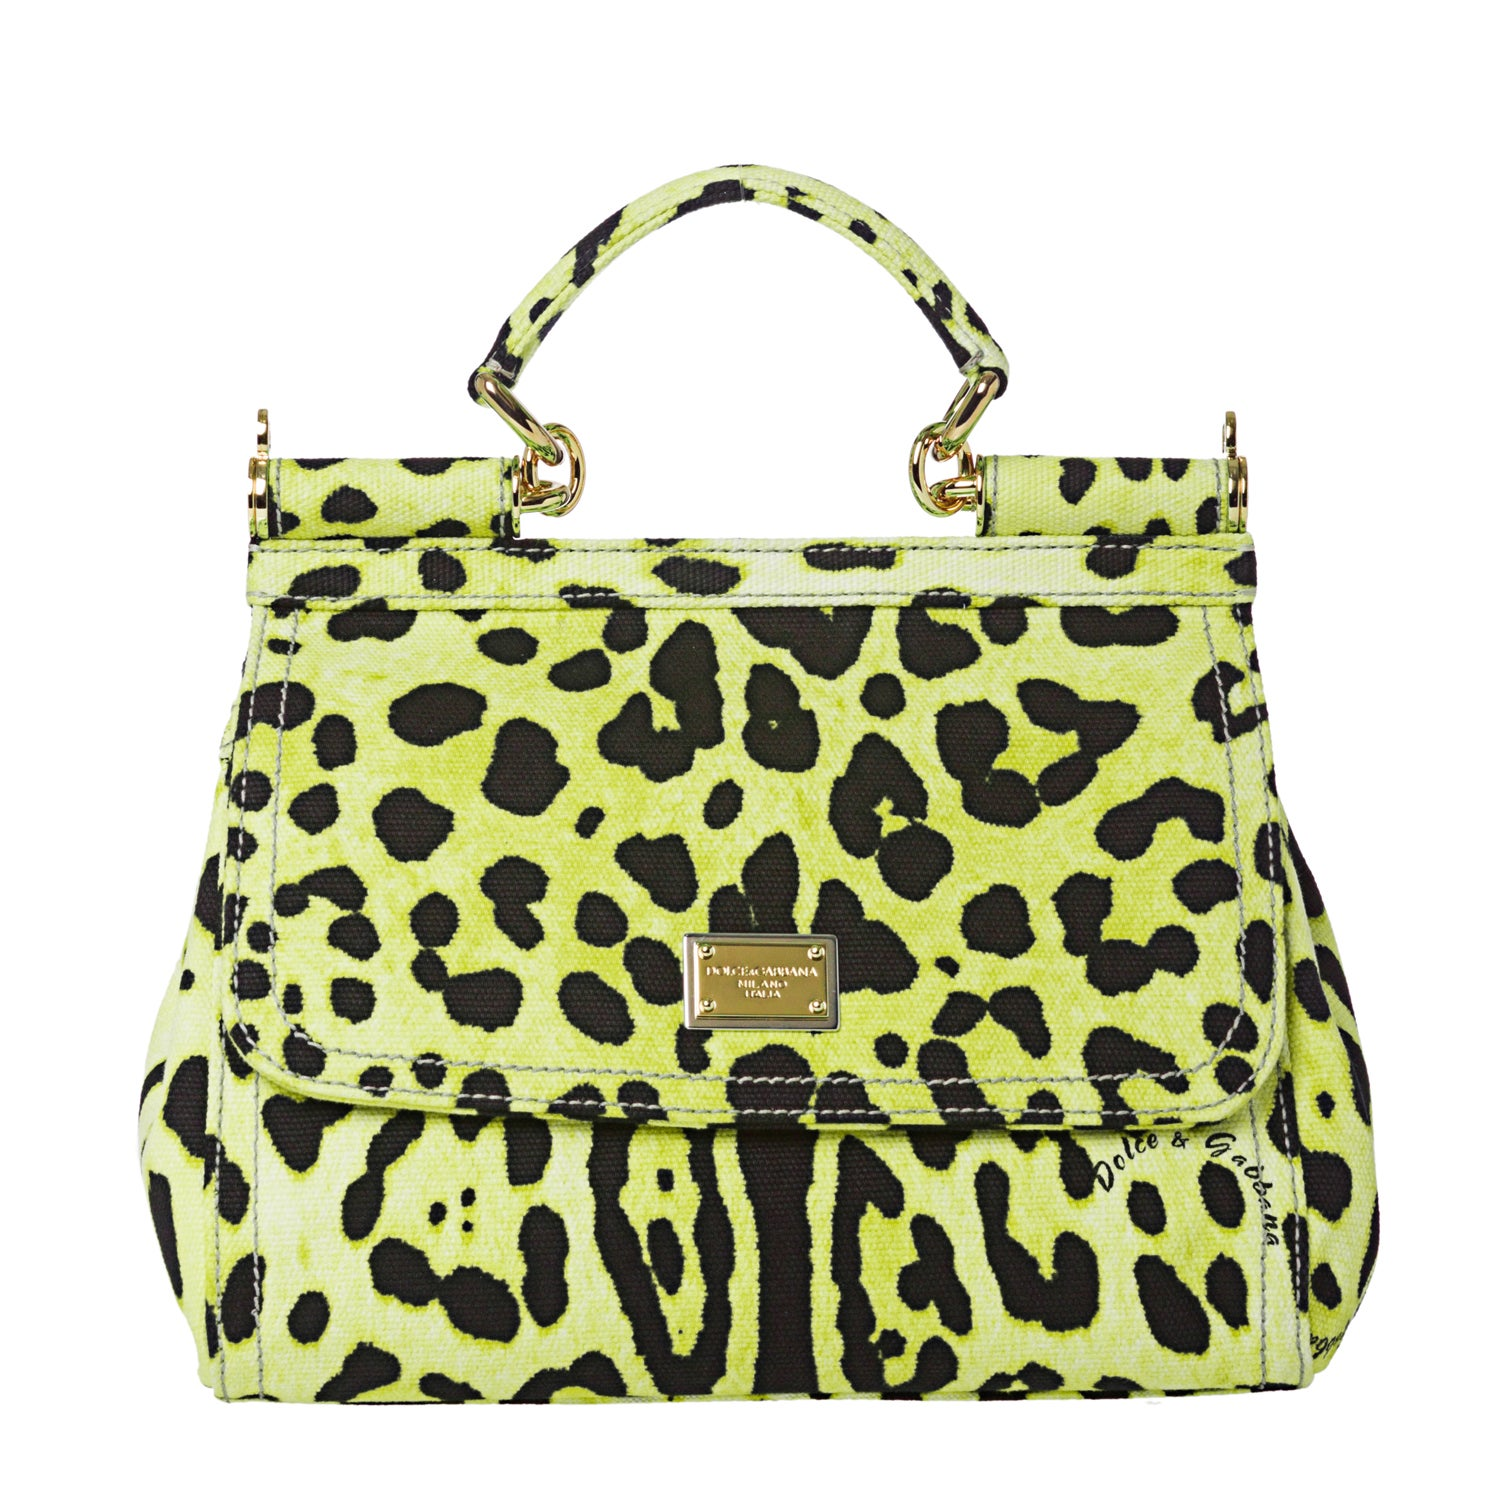 Dolce & Gabbana Miss Sicily Small Green Leopard Canvas Satchel